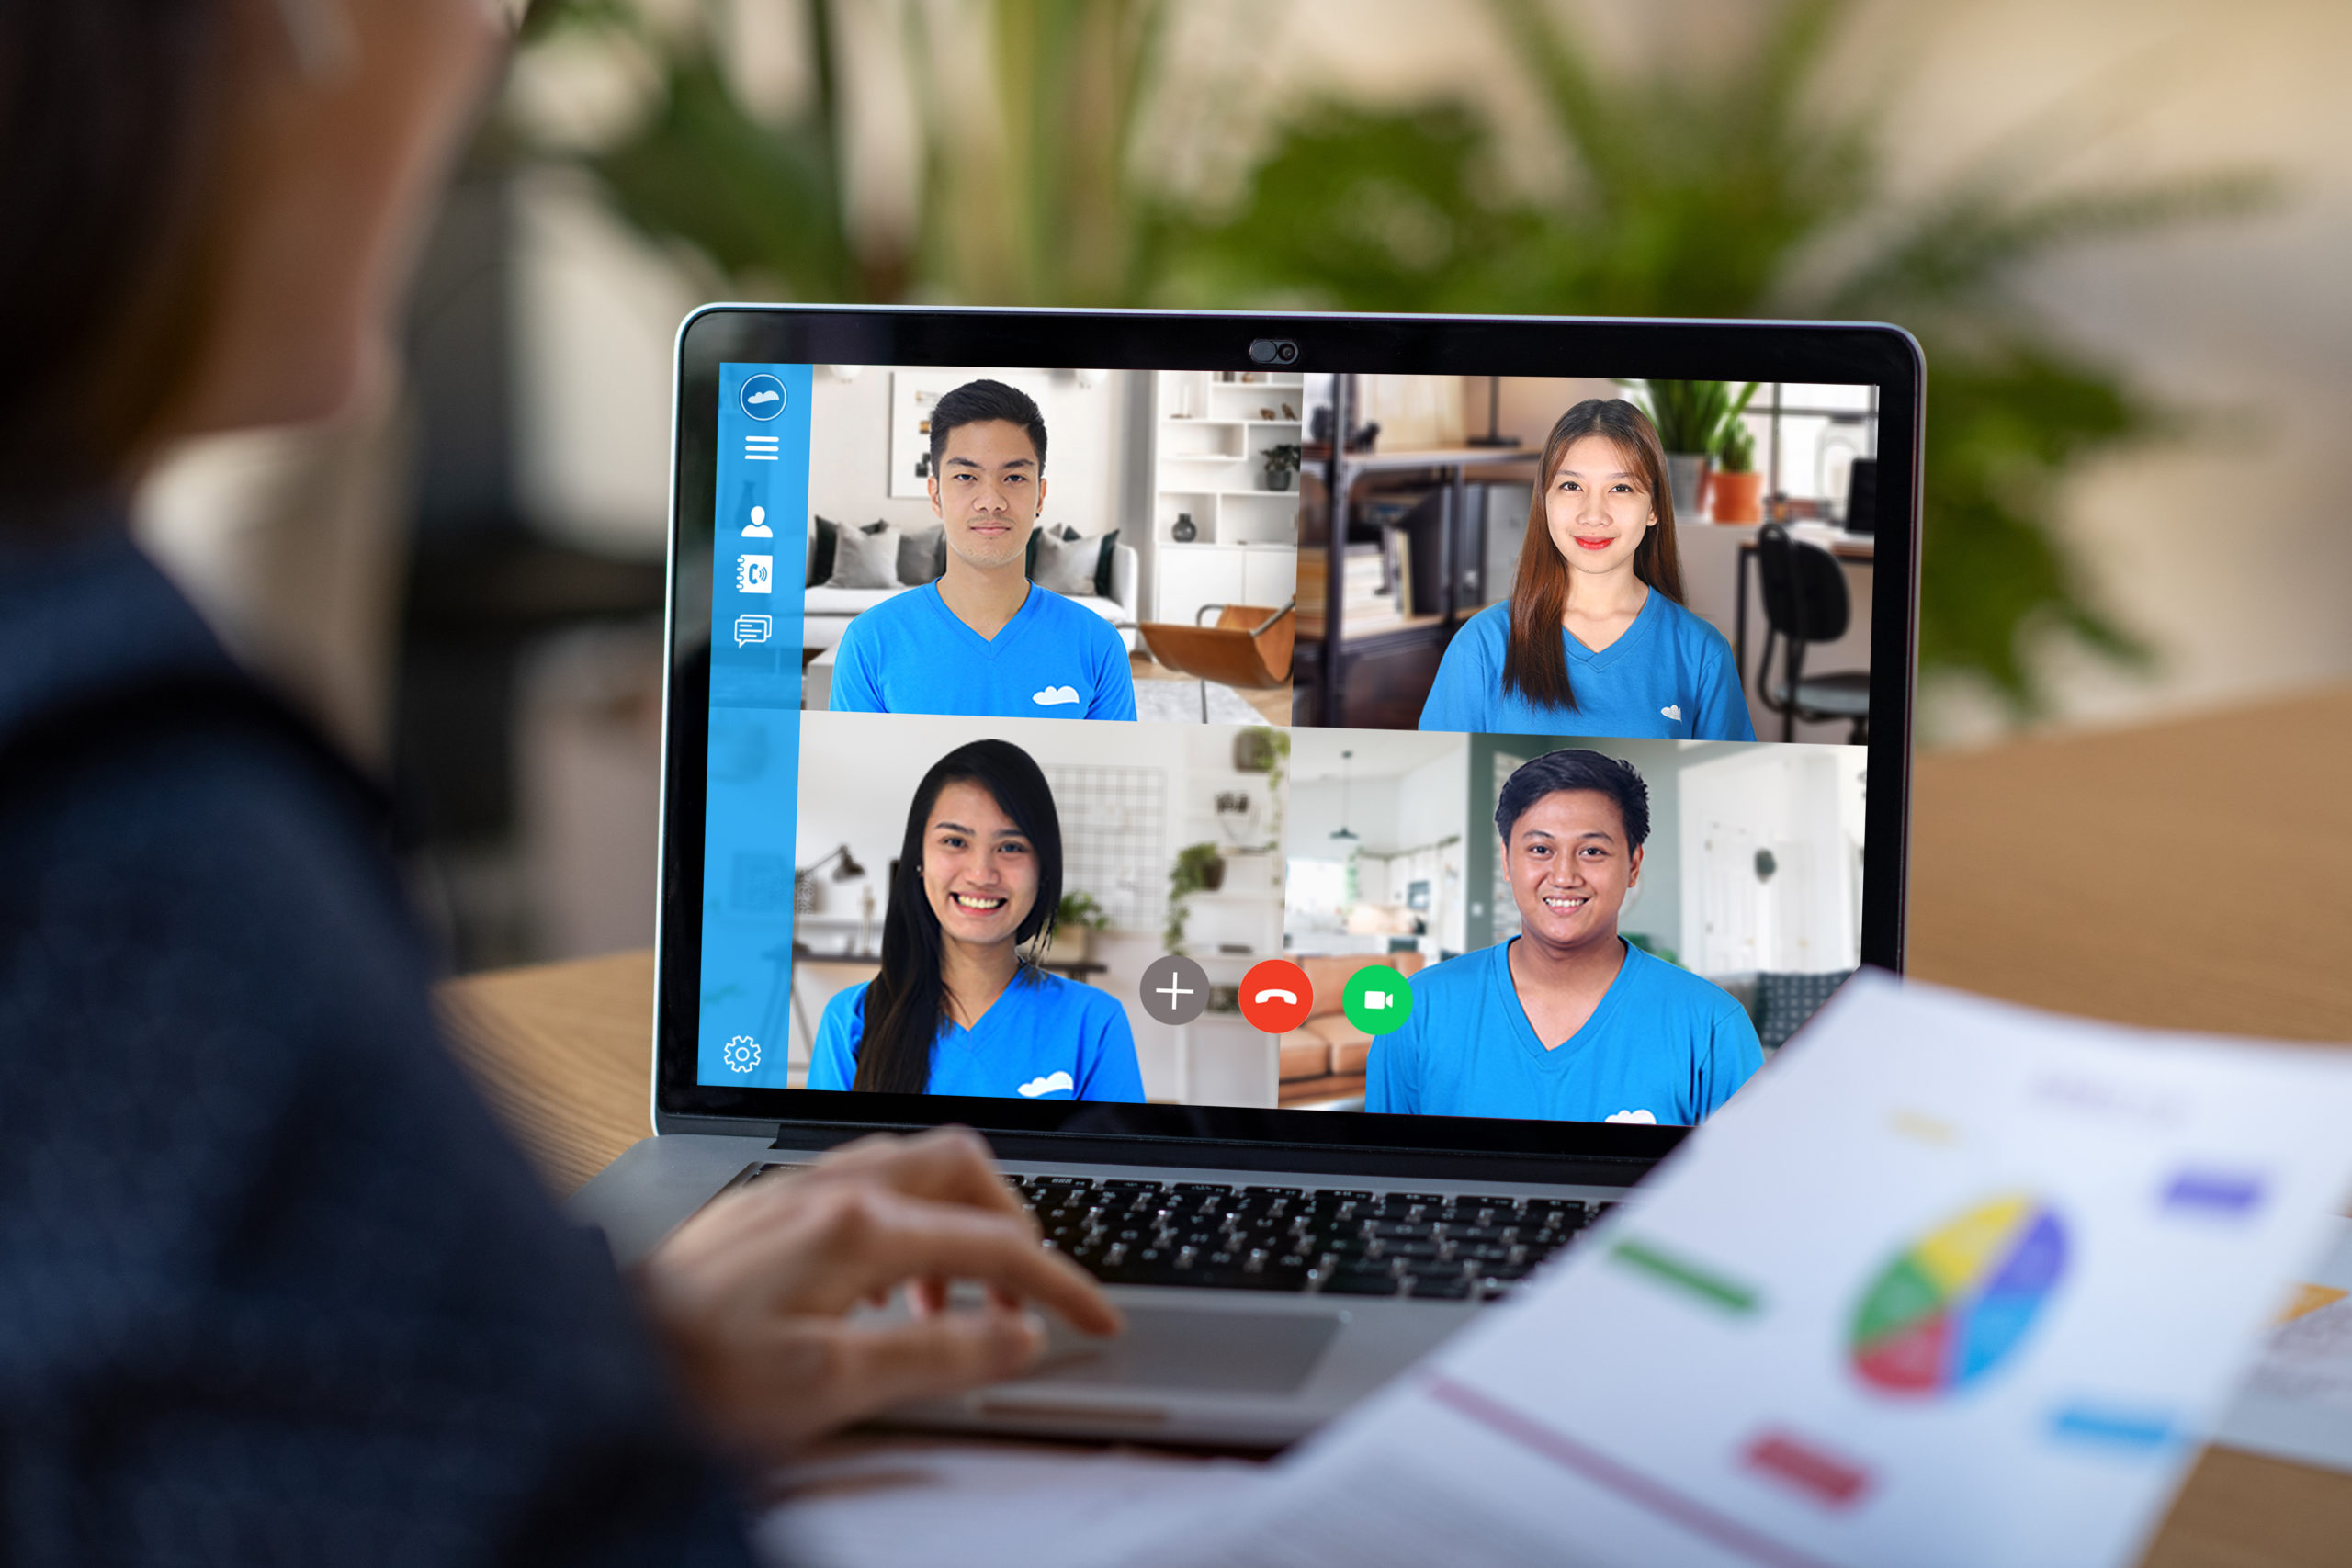 Great strategies to engage your remote team while working from home